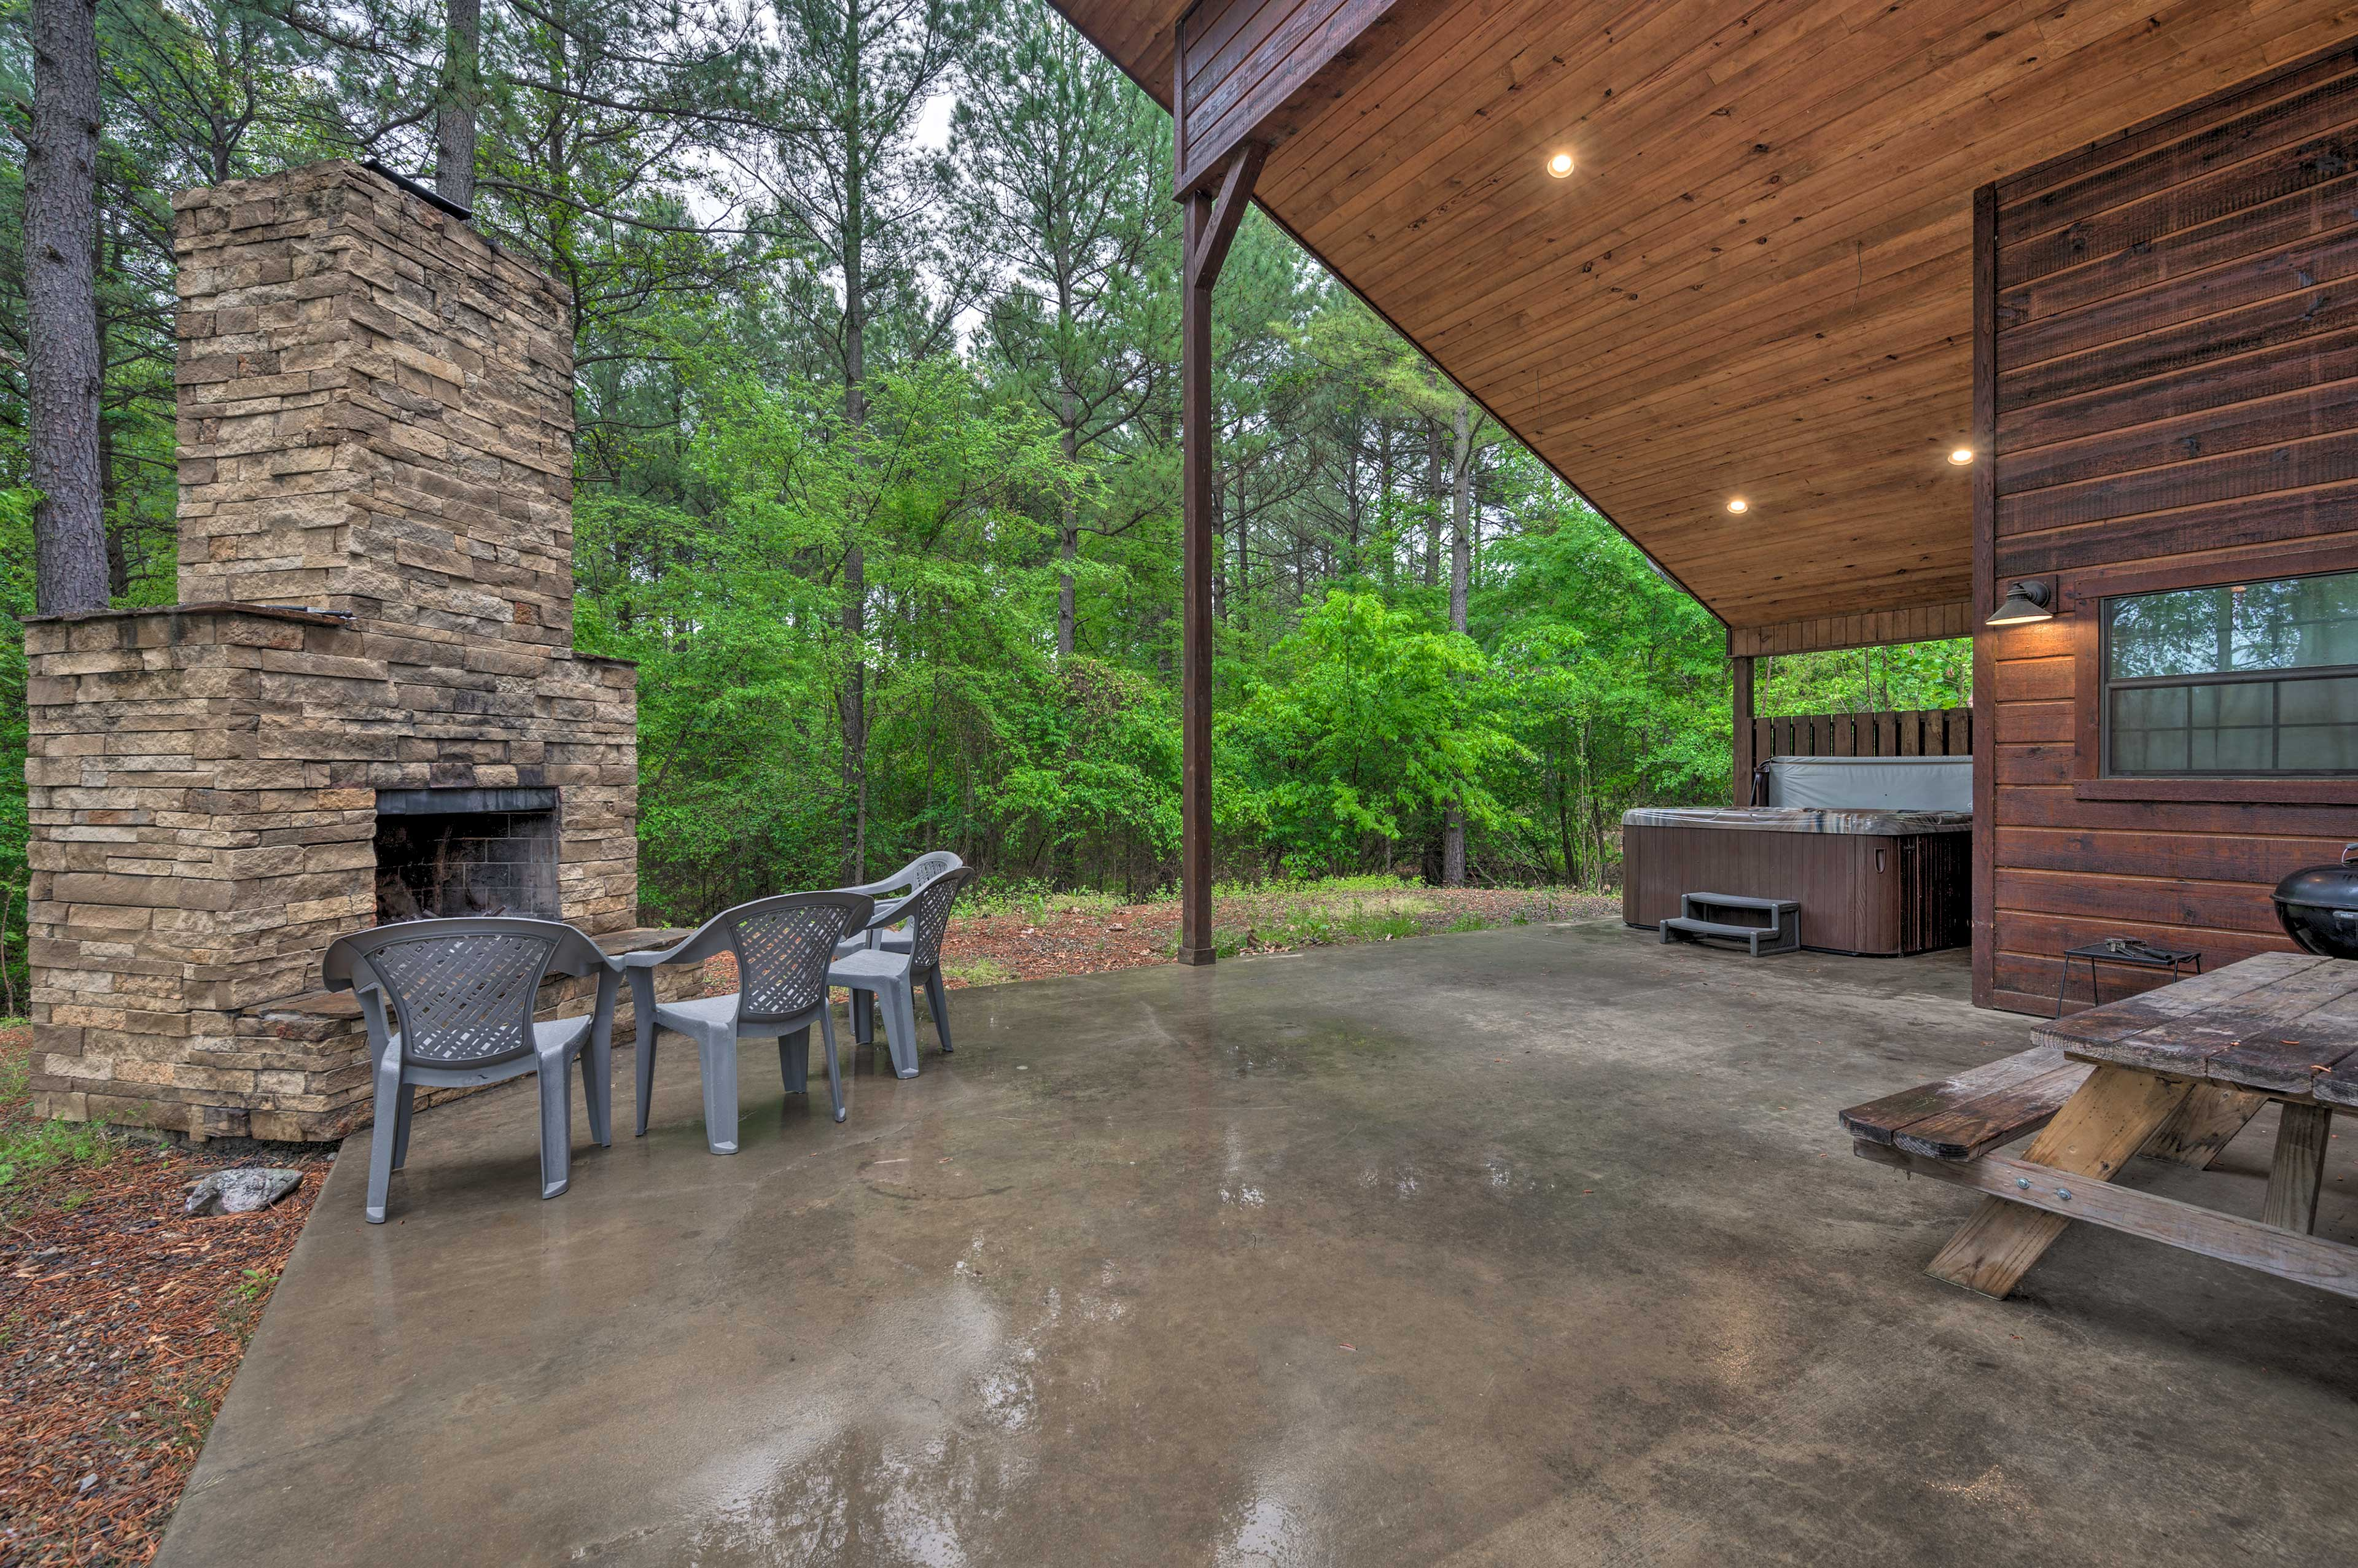 Private Partially Covered Patio